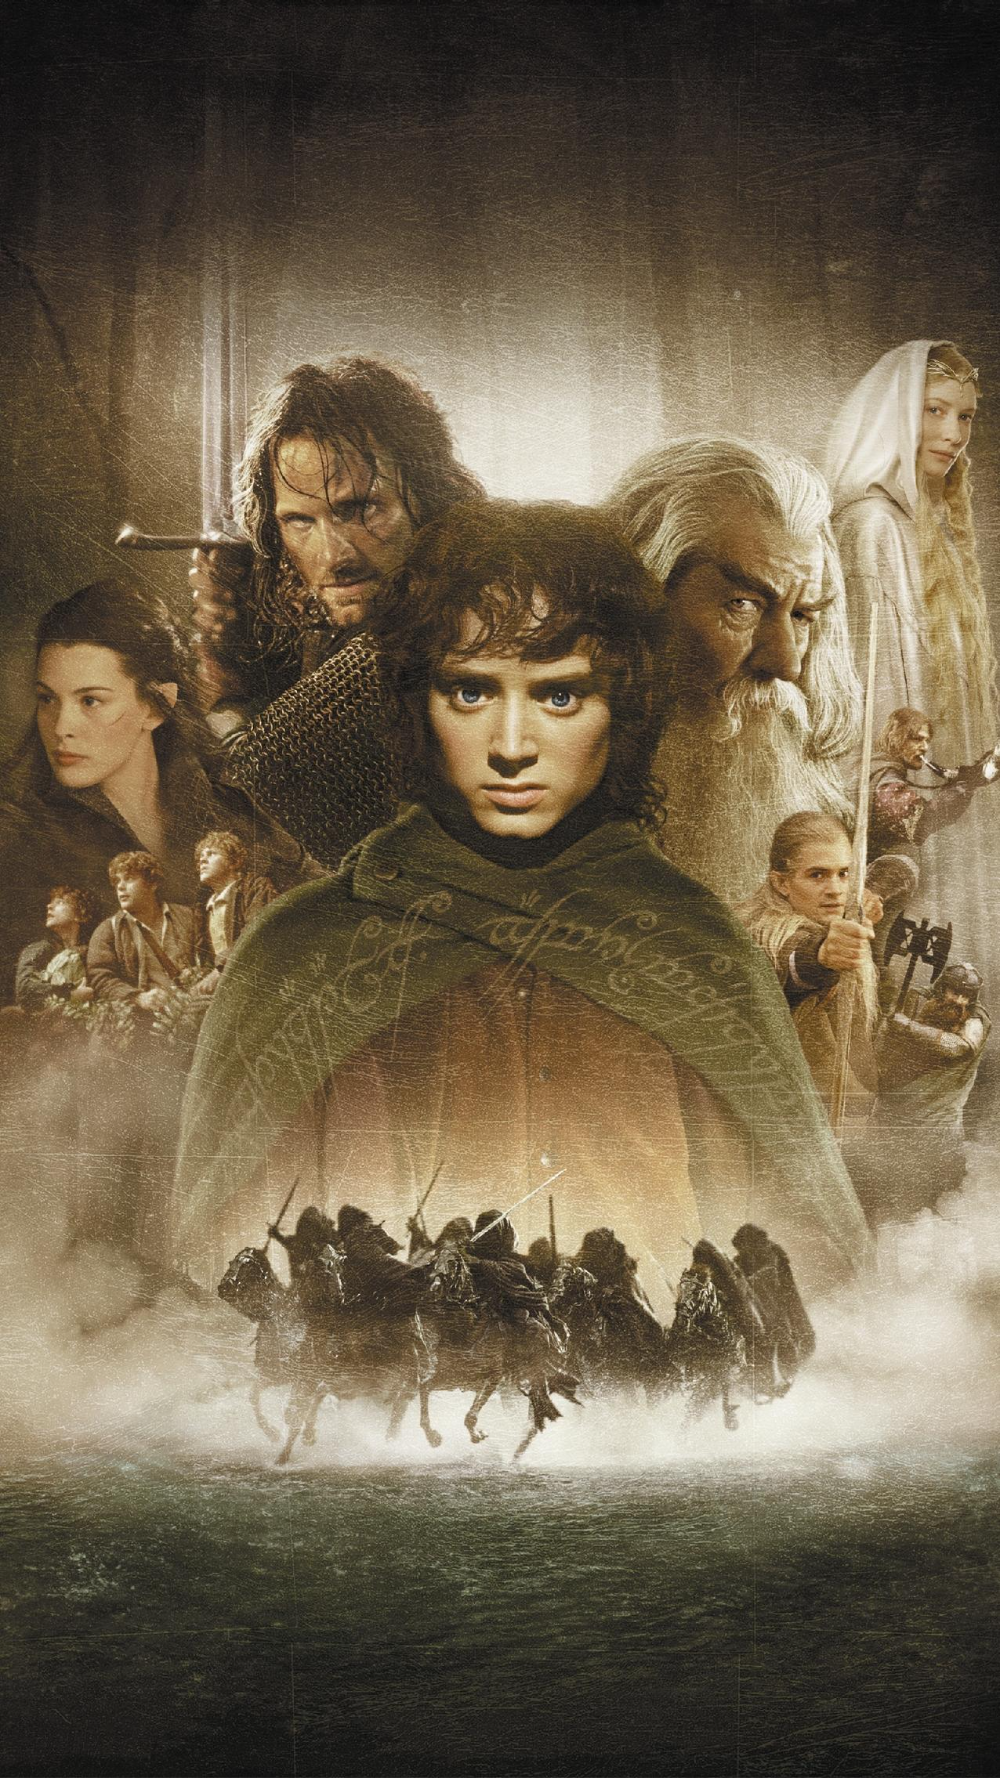 The Lord of the Rings & The Hobbit Phone Wallpapers   Moviemania